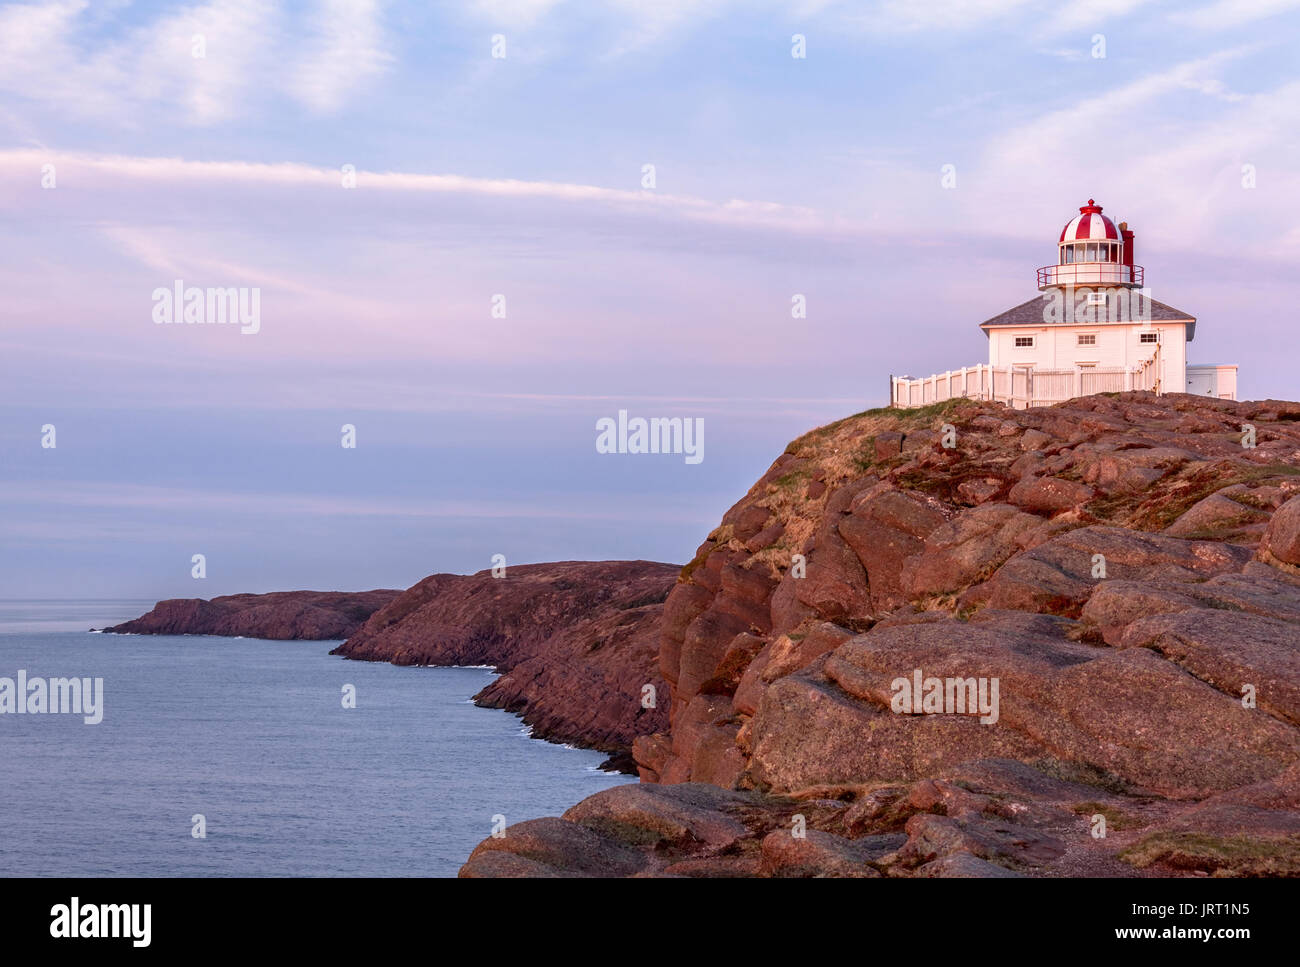 The 1836 Lighthouse at Cape Spear National Historic Site of Canada at sunrise. Cape Spear, St. John's, Newfoundland and Labrador, Canada. - Stock Image